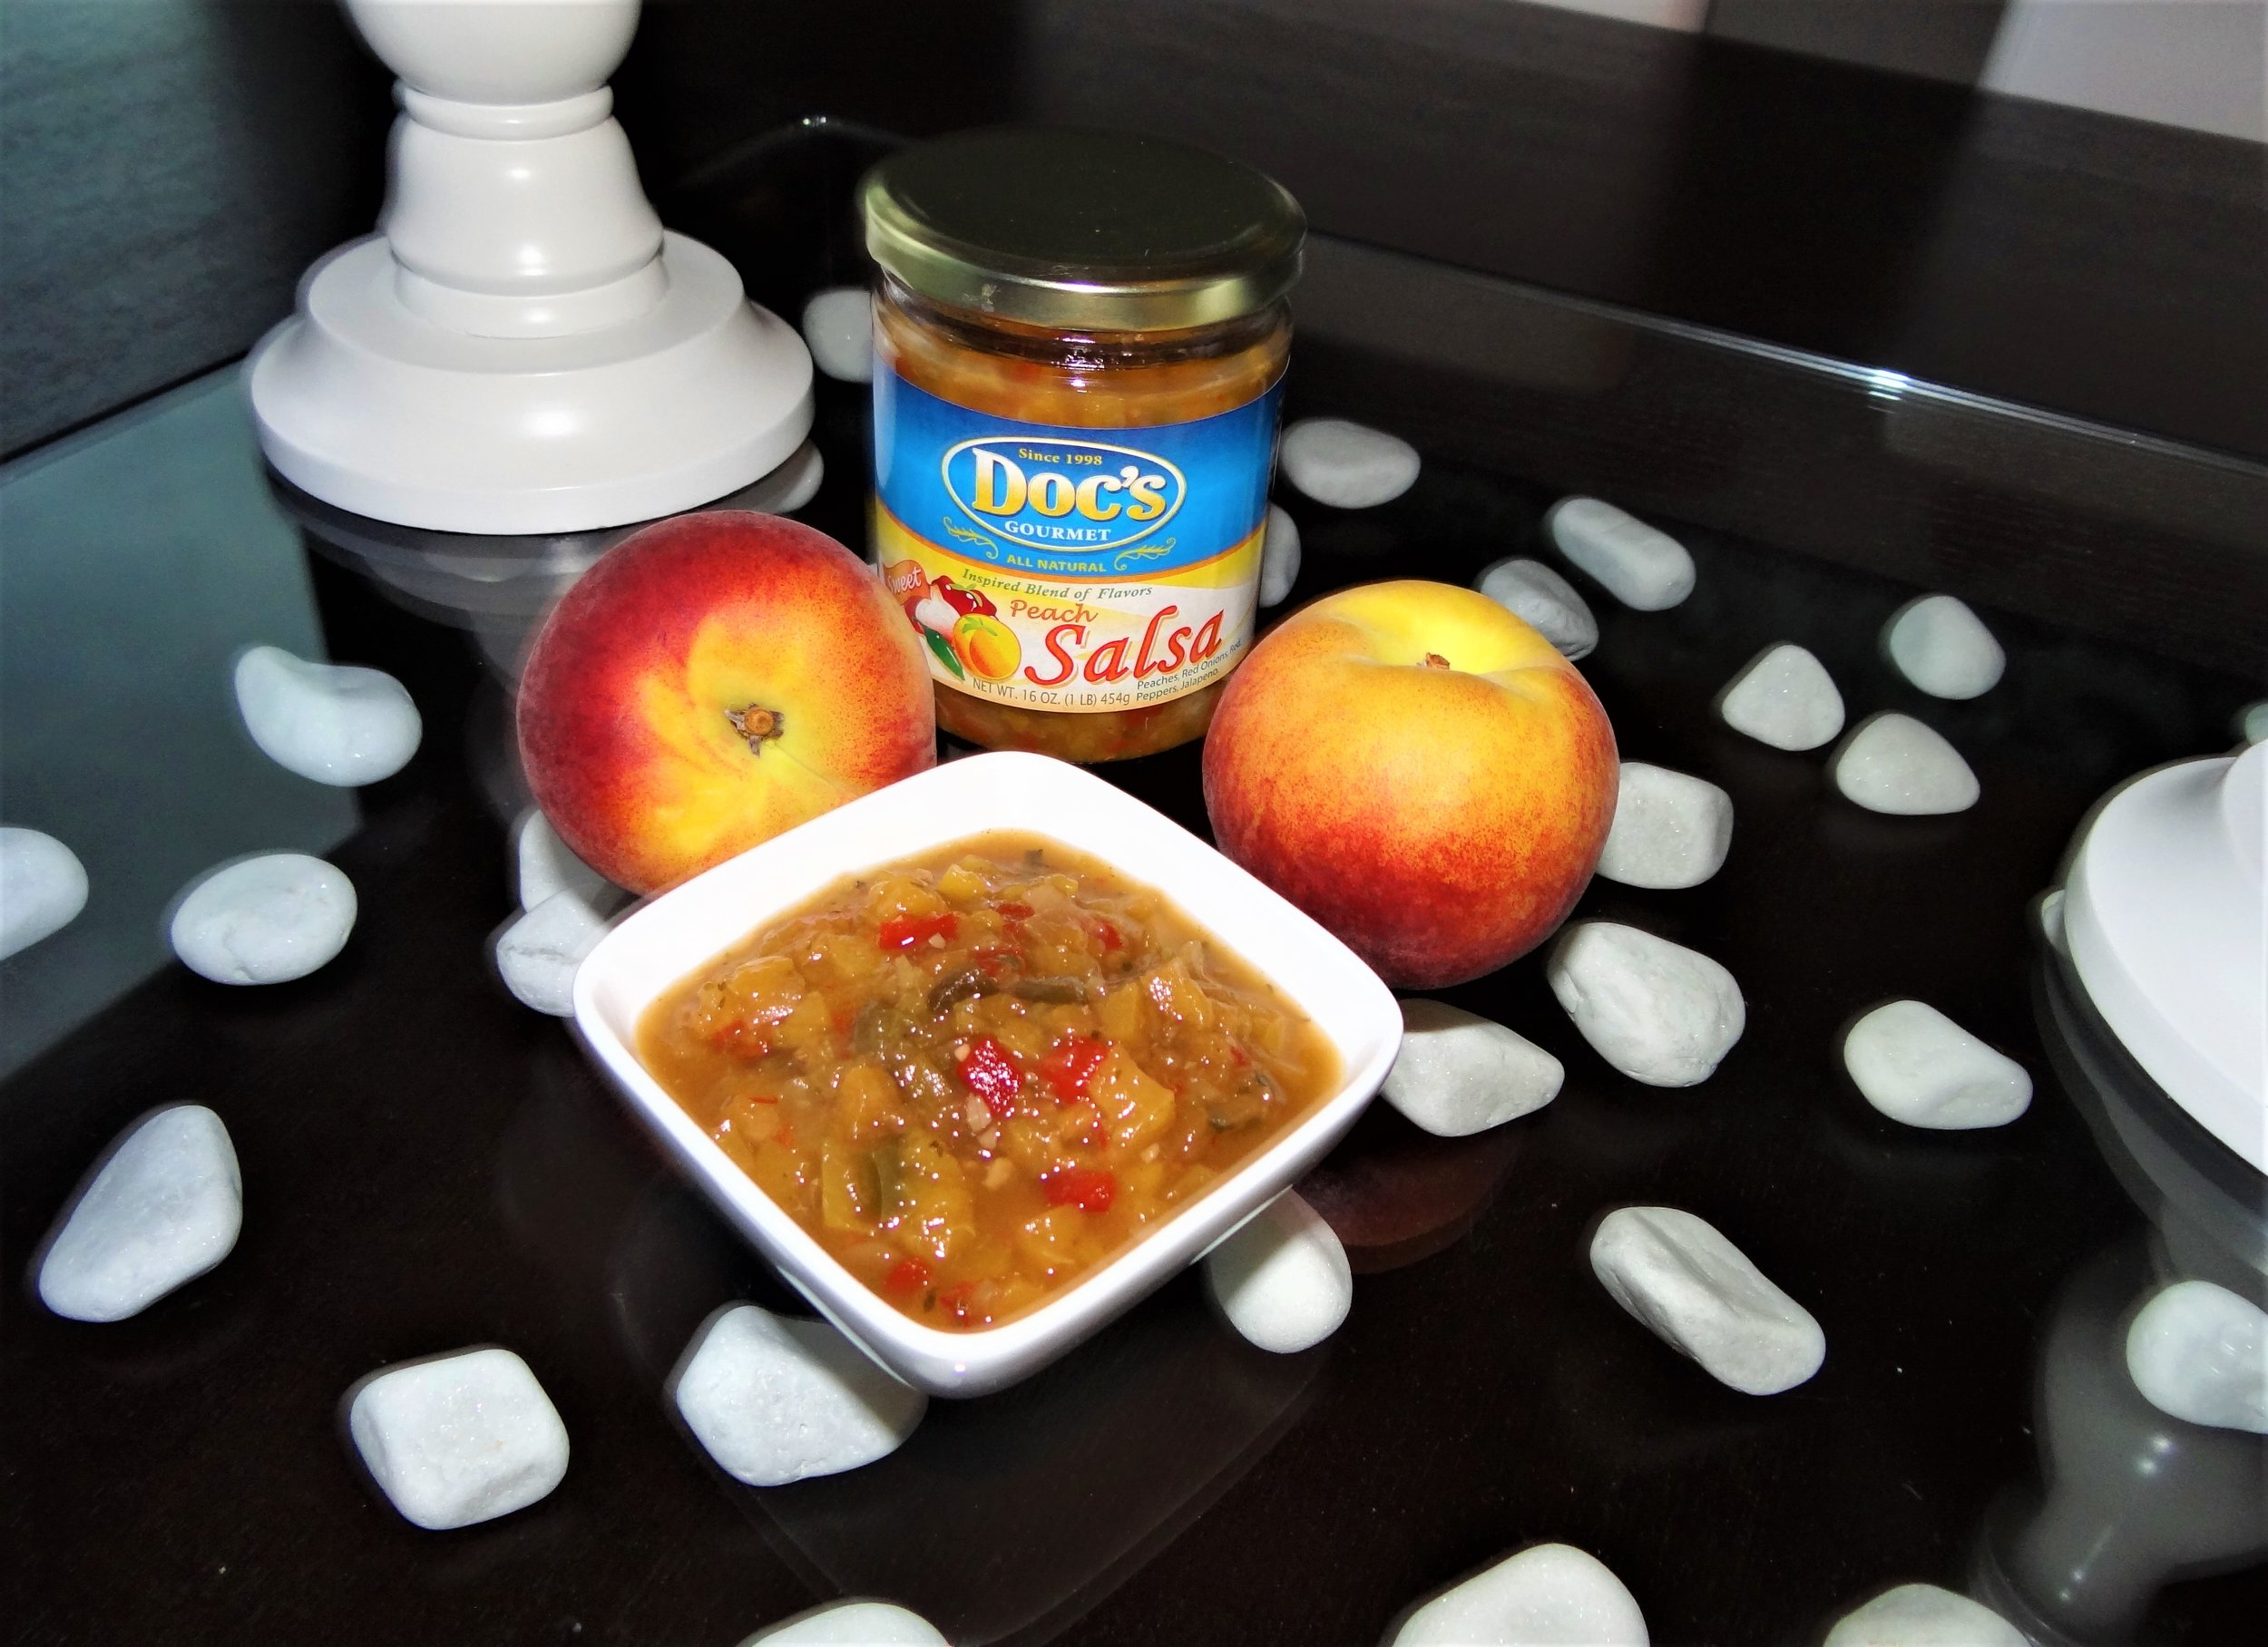 Doc's Peach Salsa - This sweet and spicy blend of peaches and peppers is great to make your favorite dip with, or to top the wildest fish.Use this gourmet specialty salsa when baking your contest winning bread recipes, and it's especially tasty in any cornbread recipe.If you want to impress your family and friends at any gathering, just add Doc's Peach Salsa.Tip: For any quick fish, chicken, or pork (including ham for the holidays), simply add Doc's Peach Salsa for the perfect glaze.